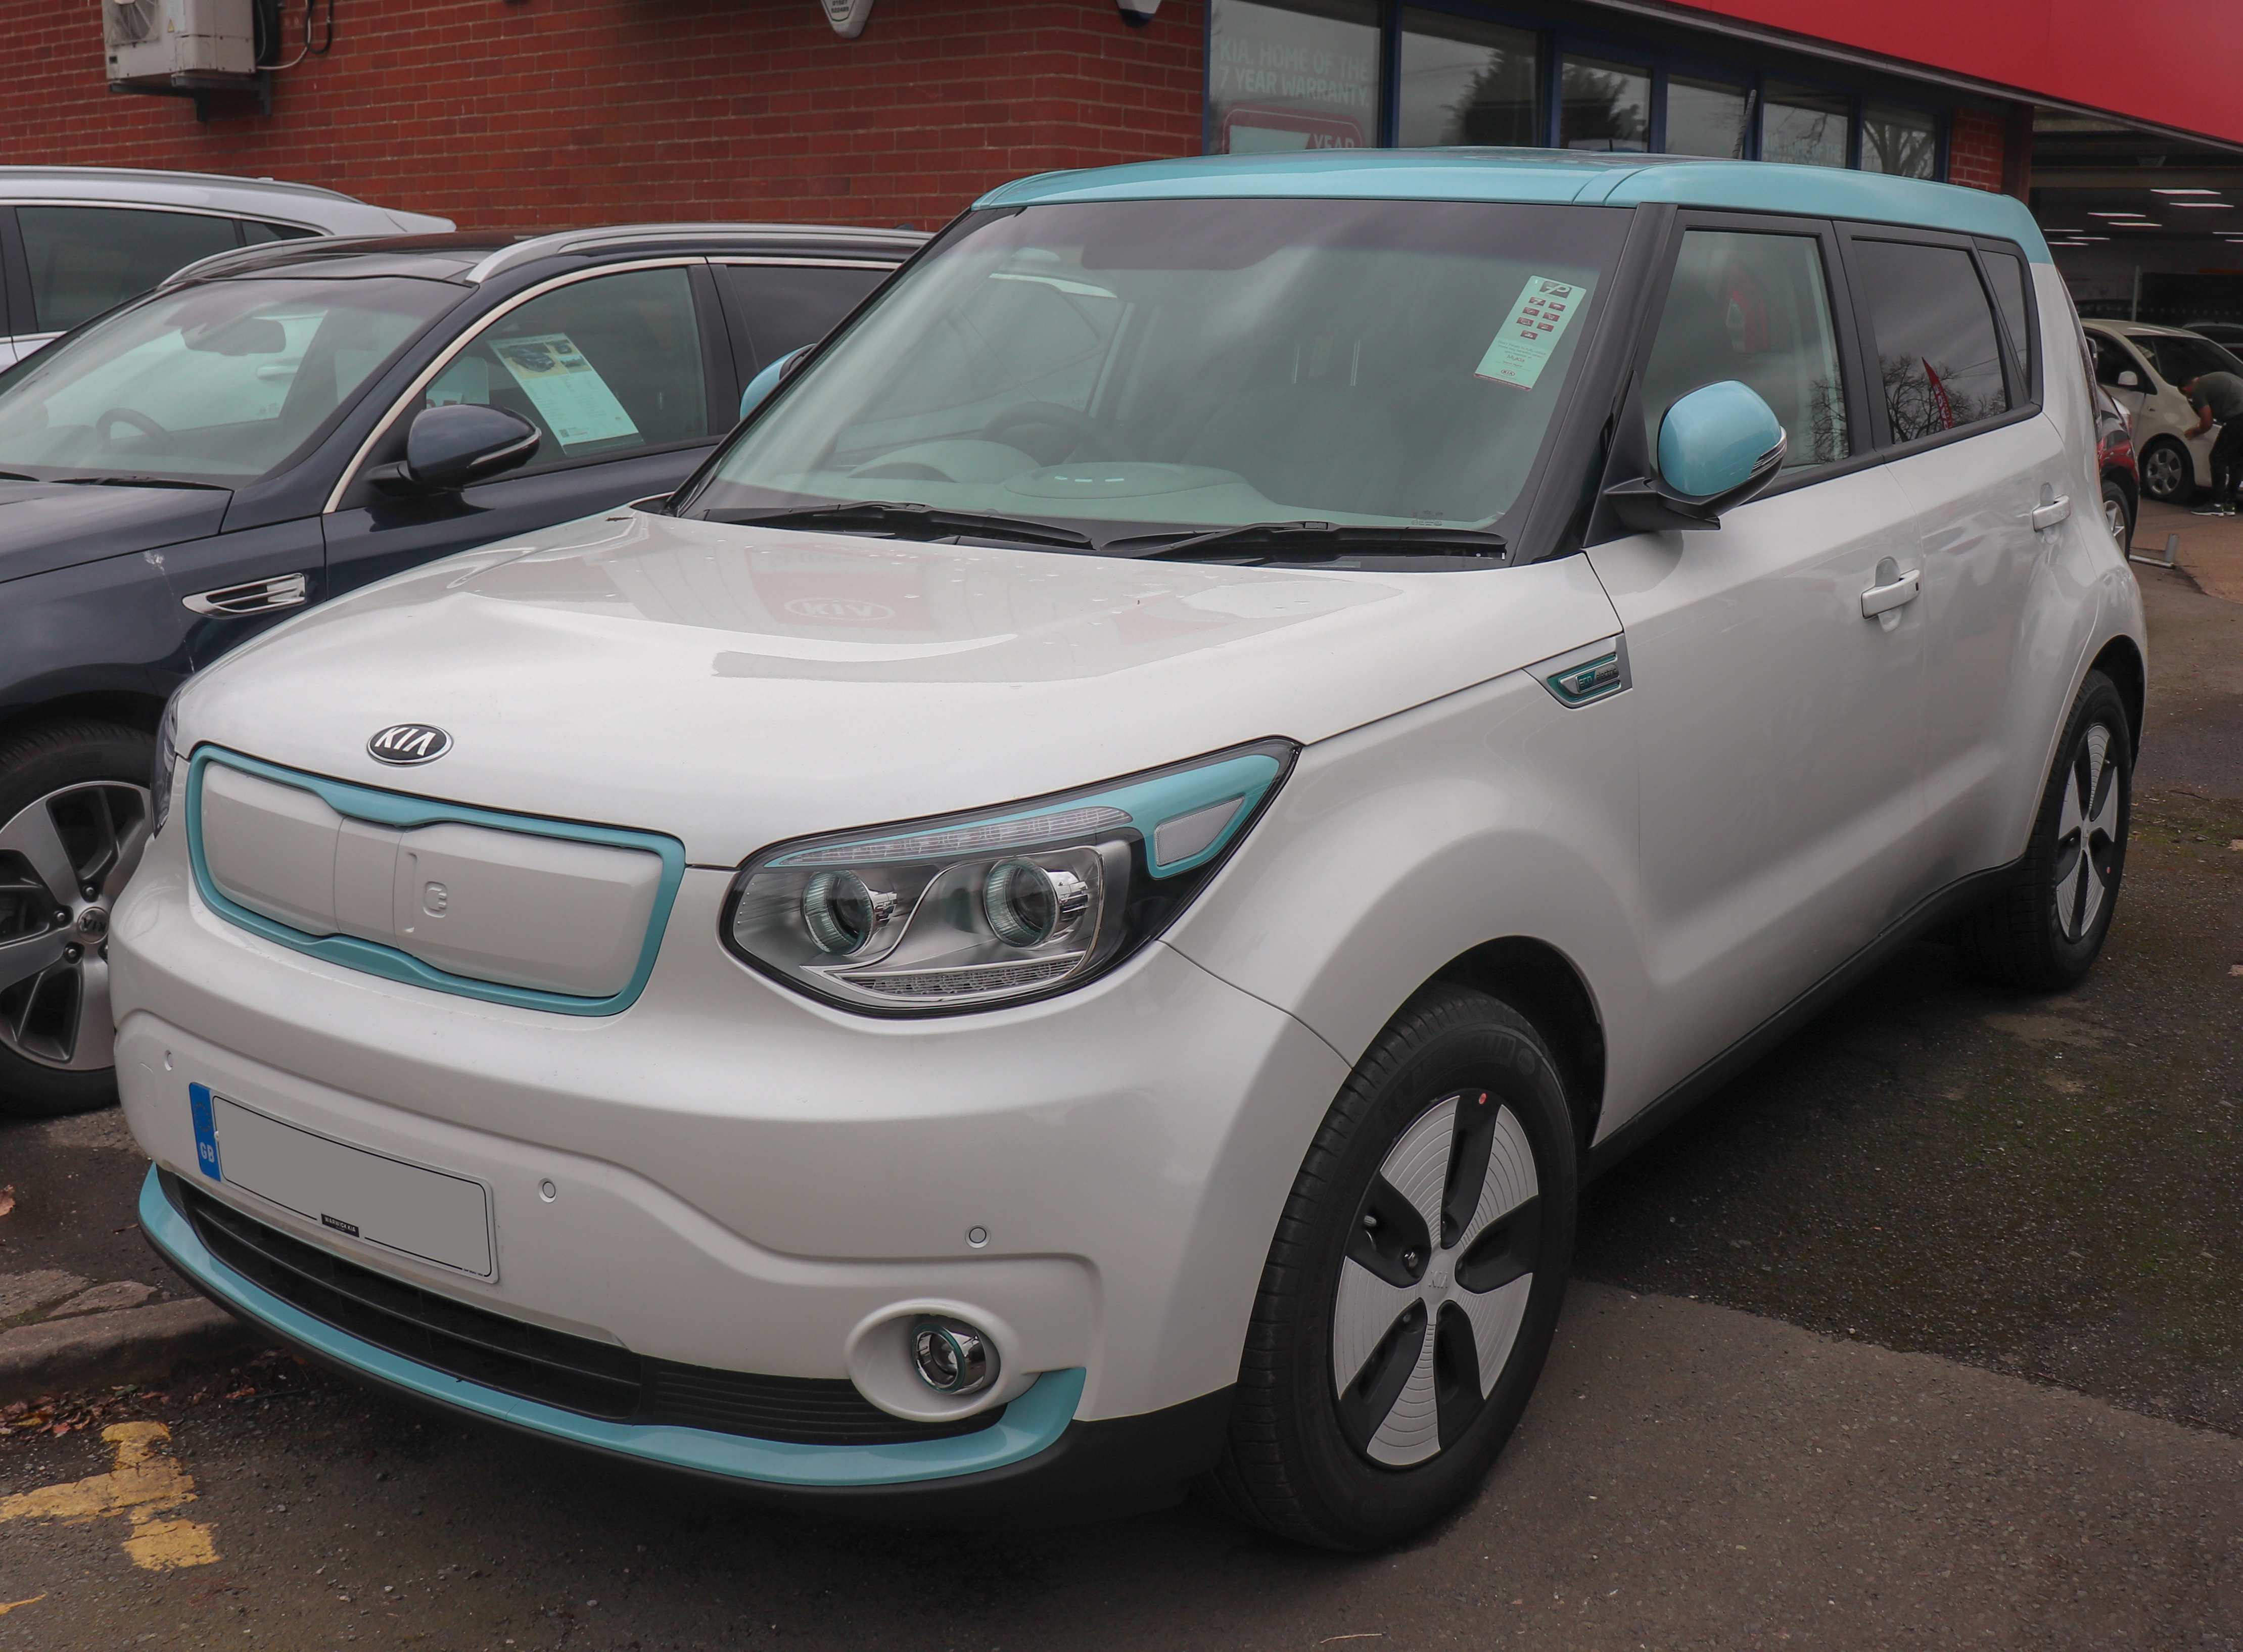 63 Best Review Kia Soul 2020 Uk Overview with Kia Soul 2020 Uk